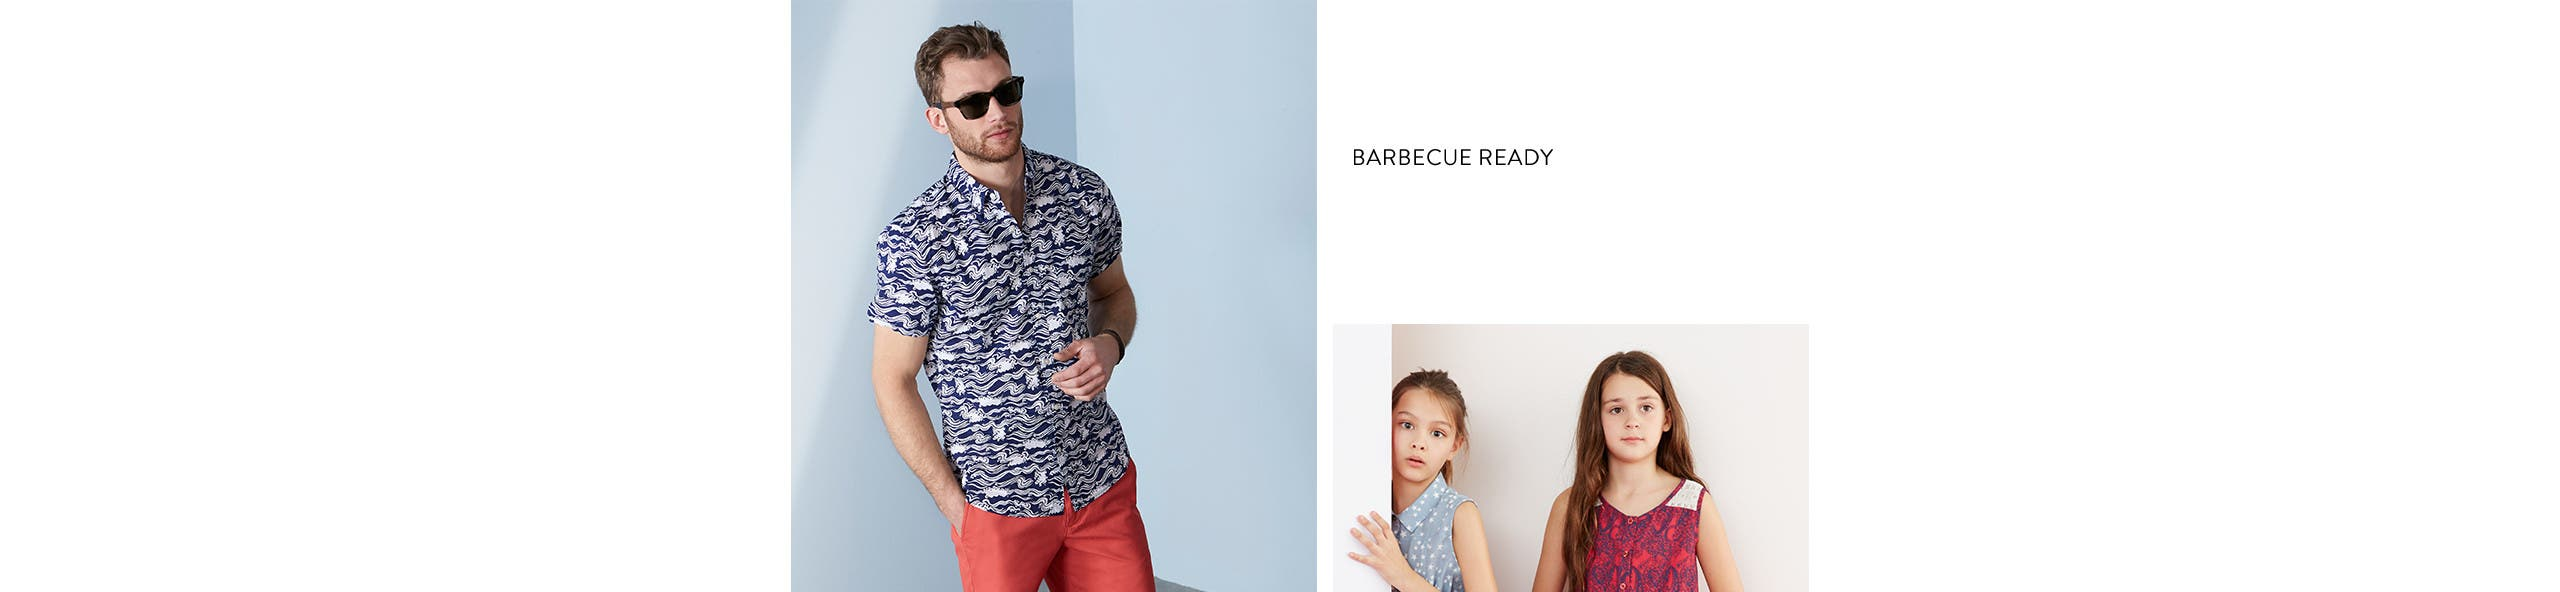 Barbecue ready in men's clothing and more. Americana-cool kids' clothing.